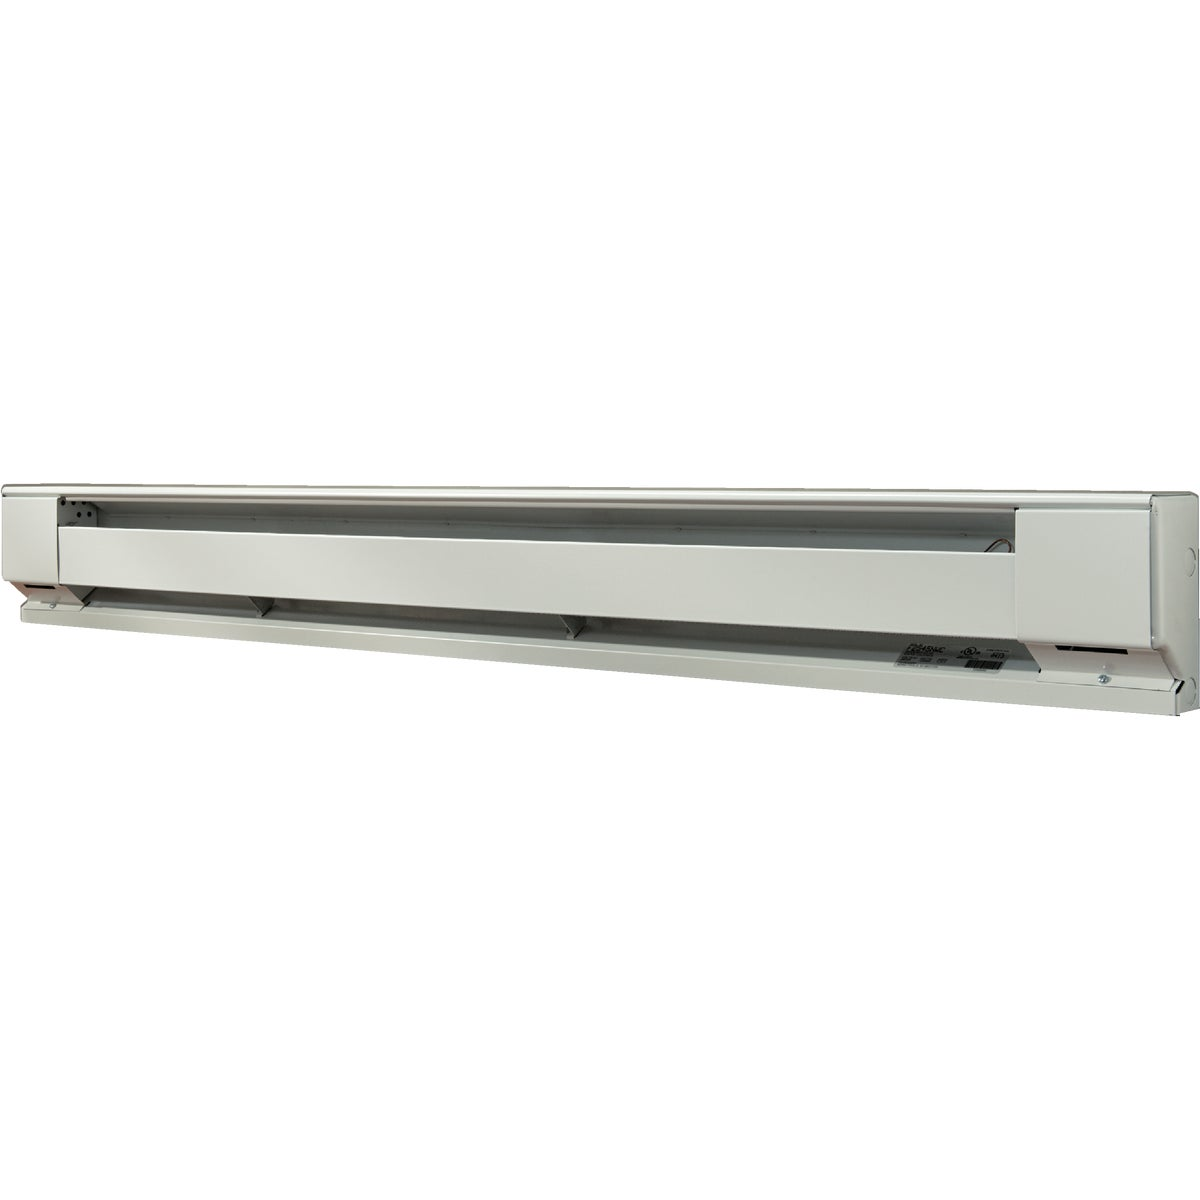 8' BASEBOARD HEATER - F2548 by Fahrenheat Marley